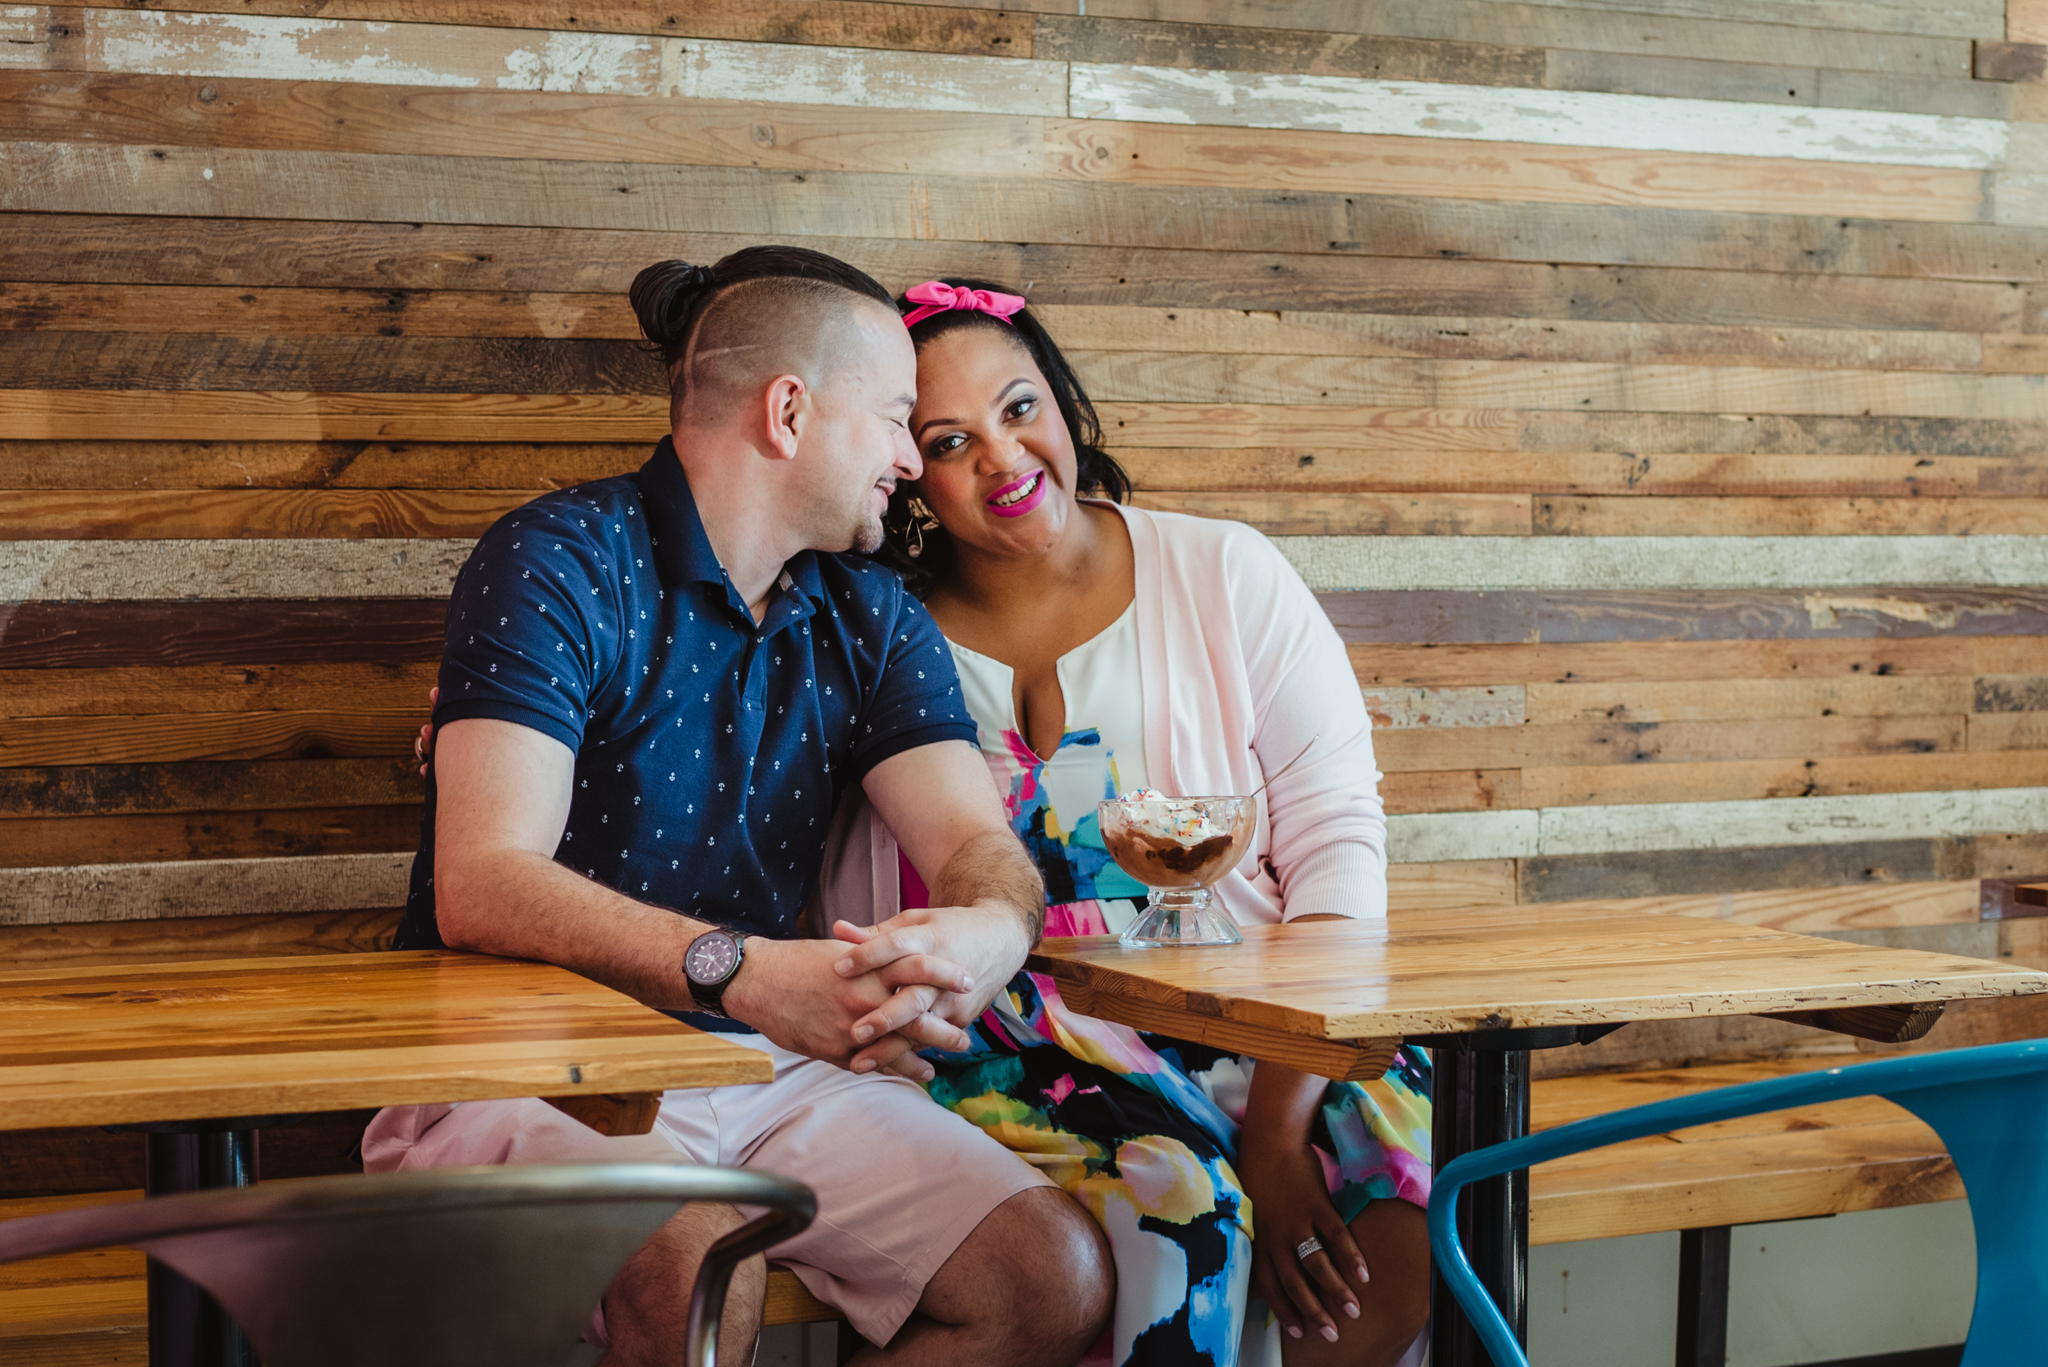 The parents to be cuddle together at The Parlour in Durham during their baby announcement photo session with Rose Trail Images.